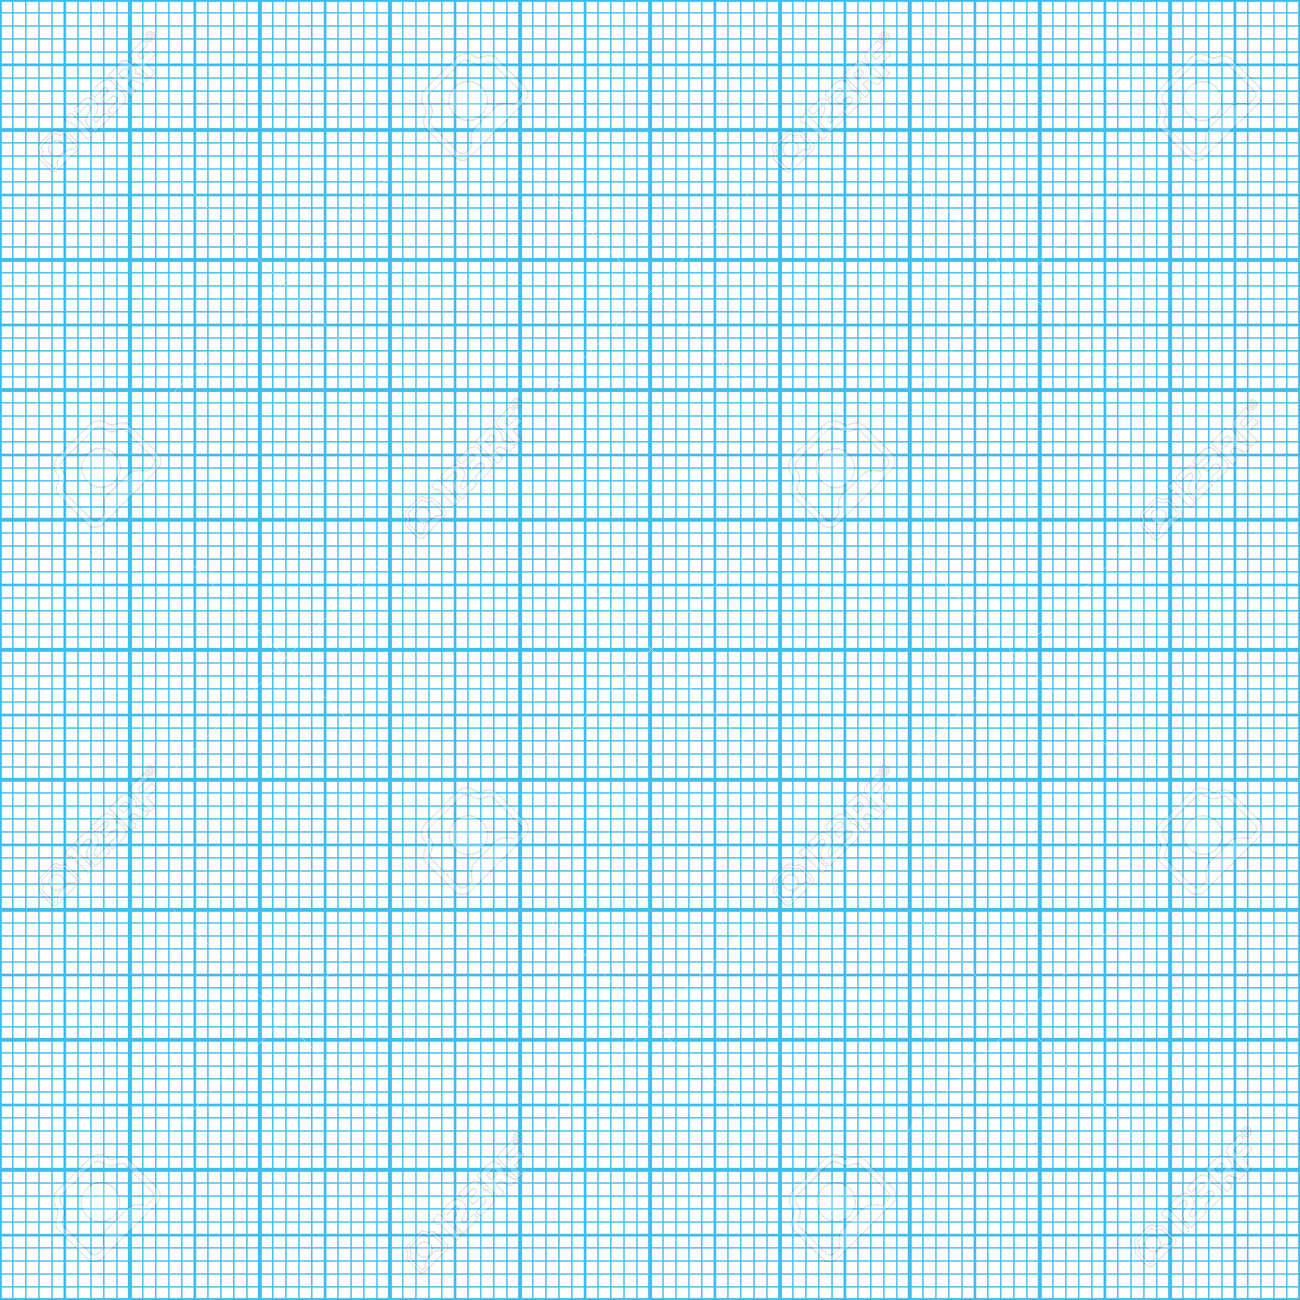 graph millimeter paper seamless real scale royalty free cliparts